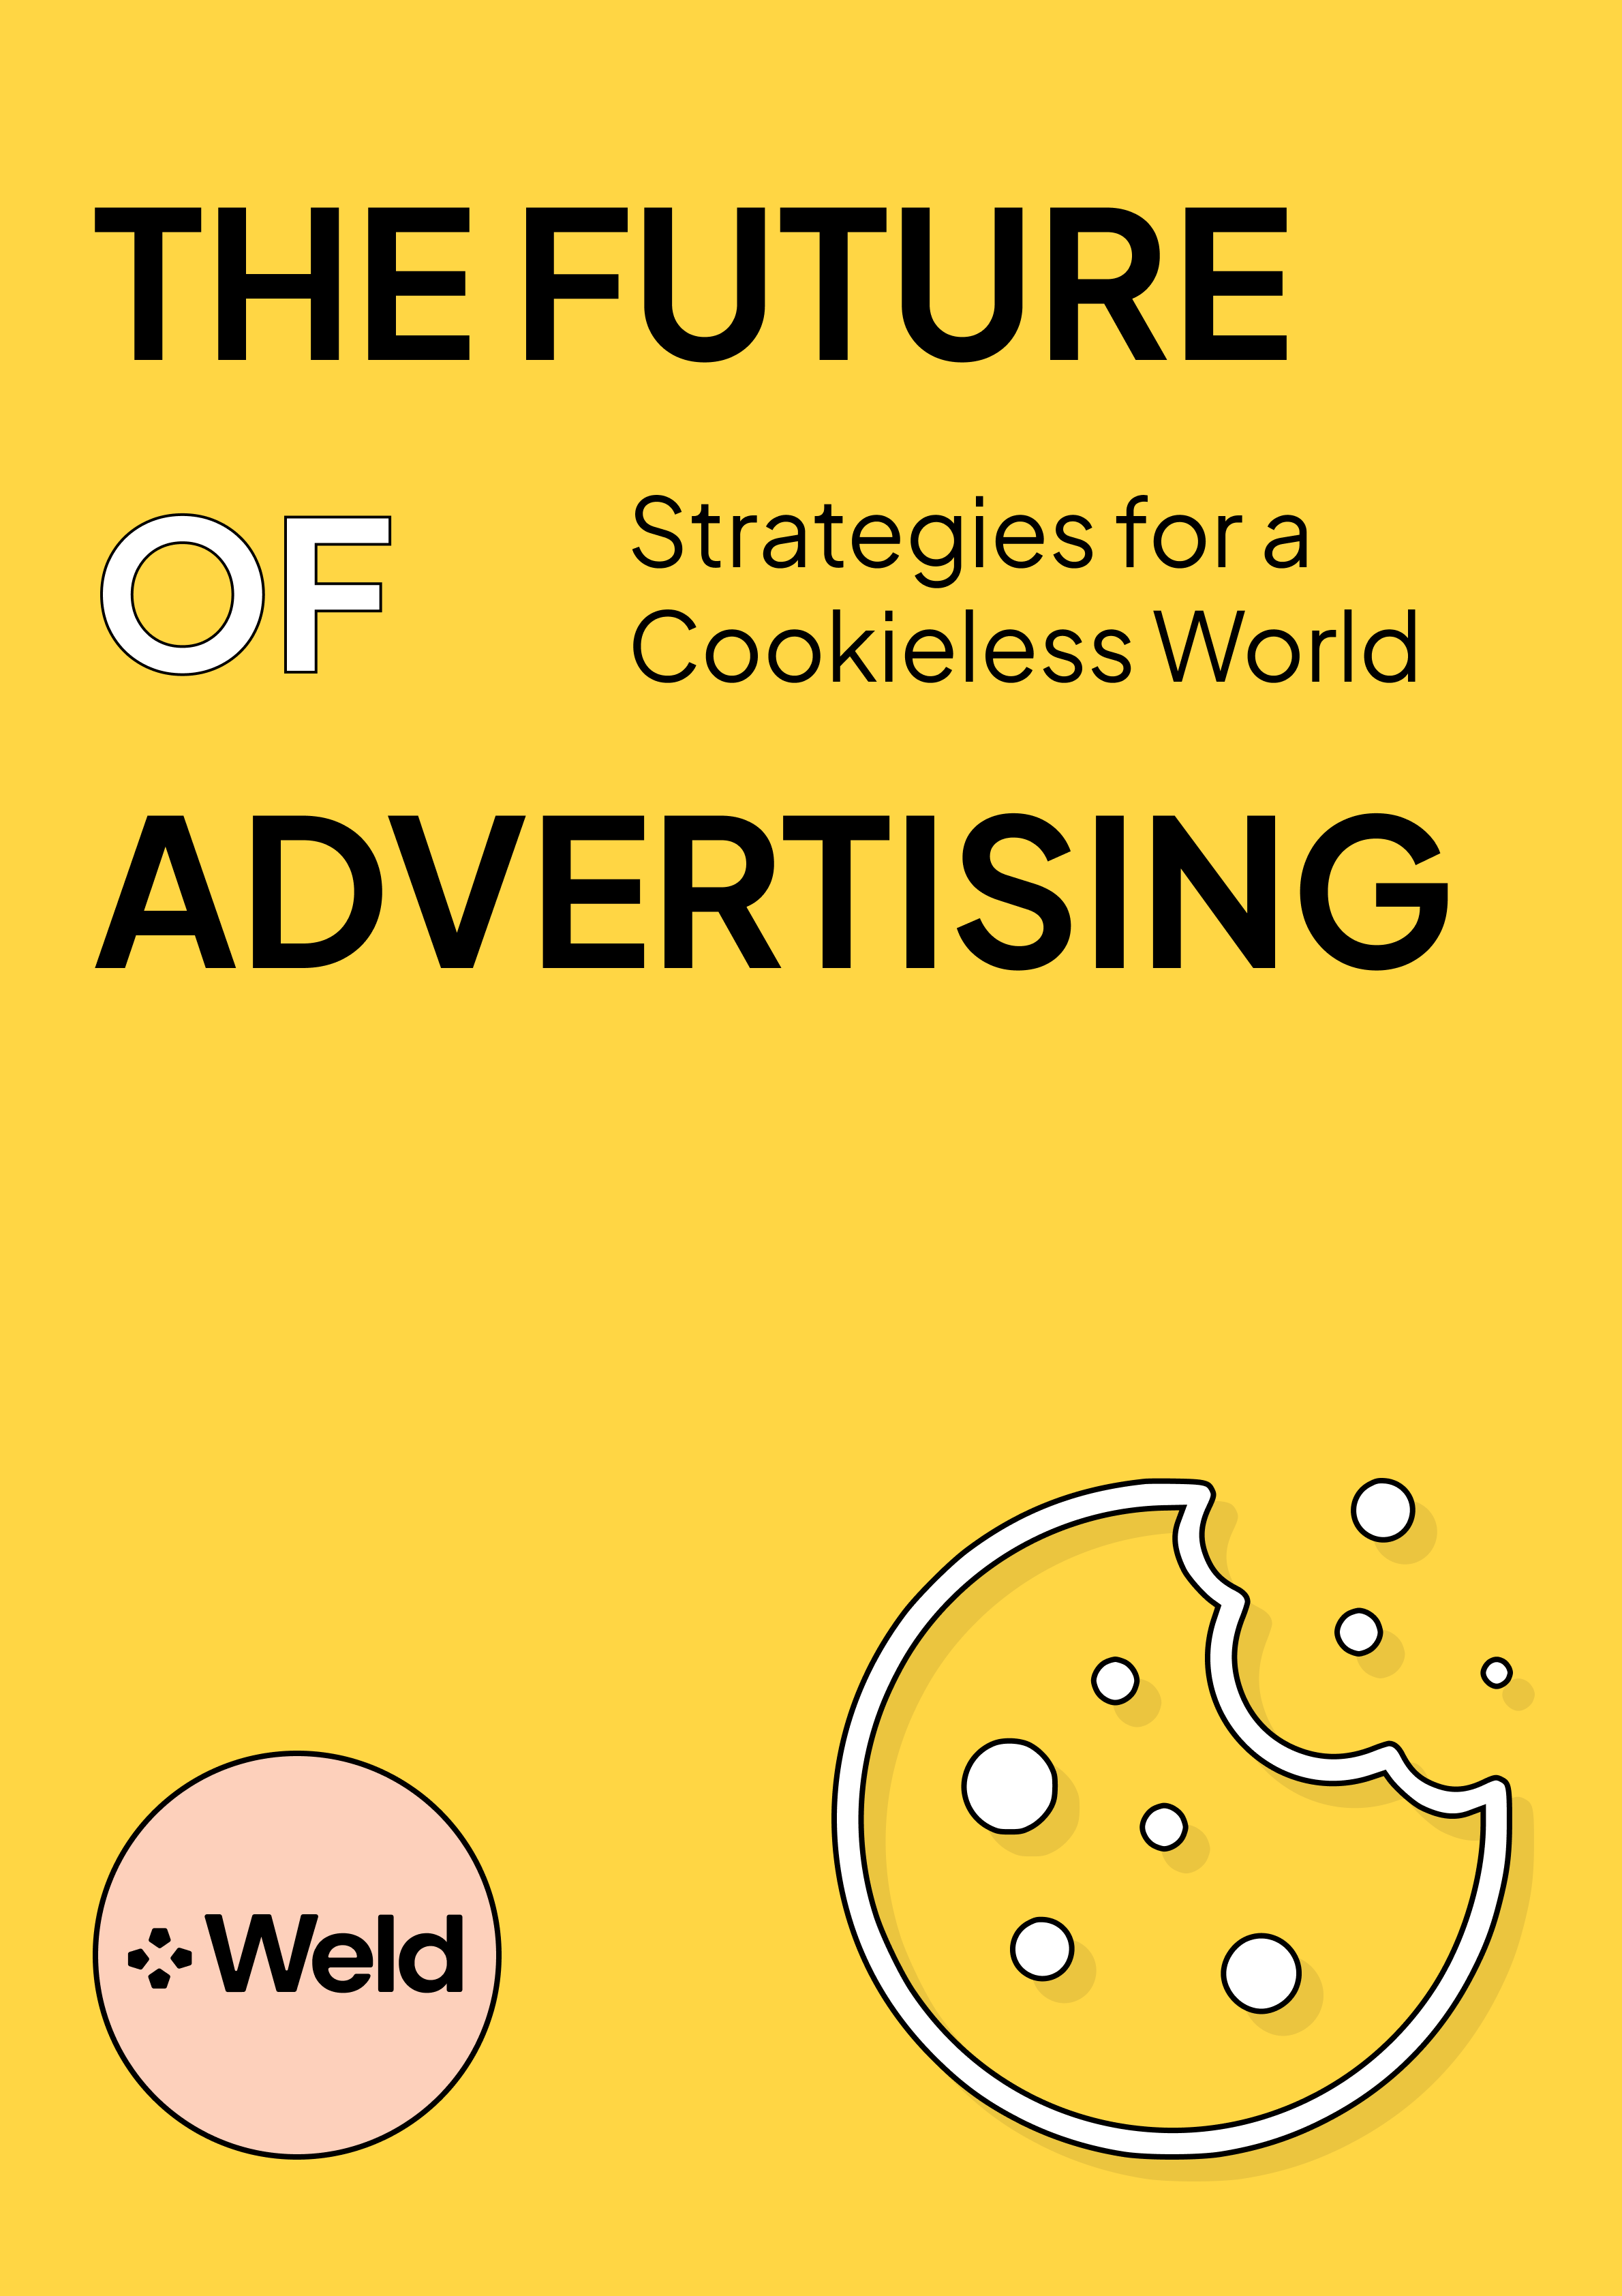 The Future of Advertising – Strategies for a Cookieless World